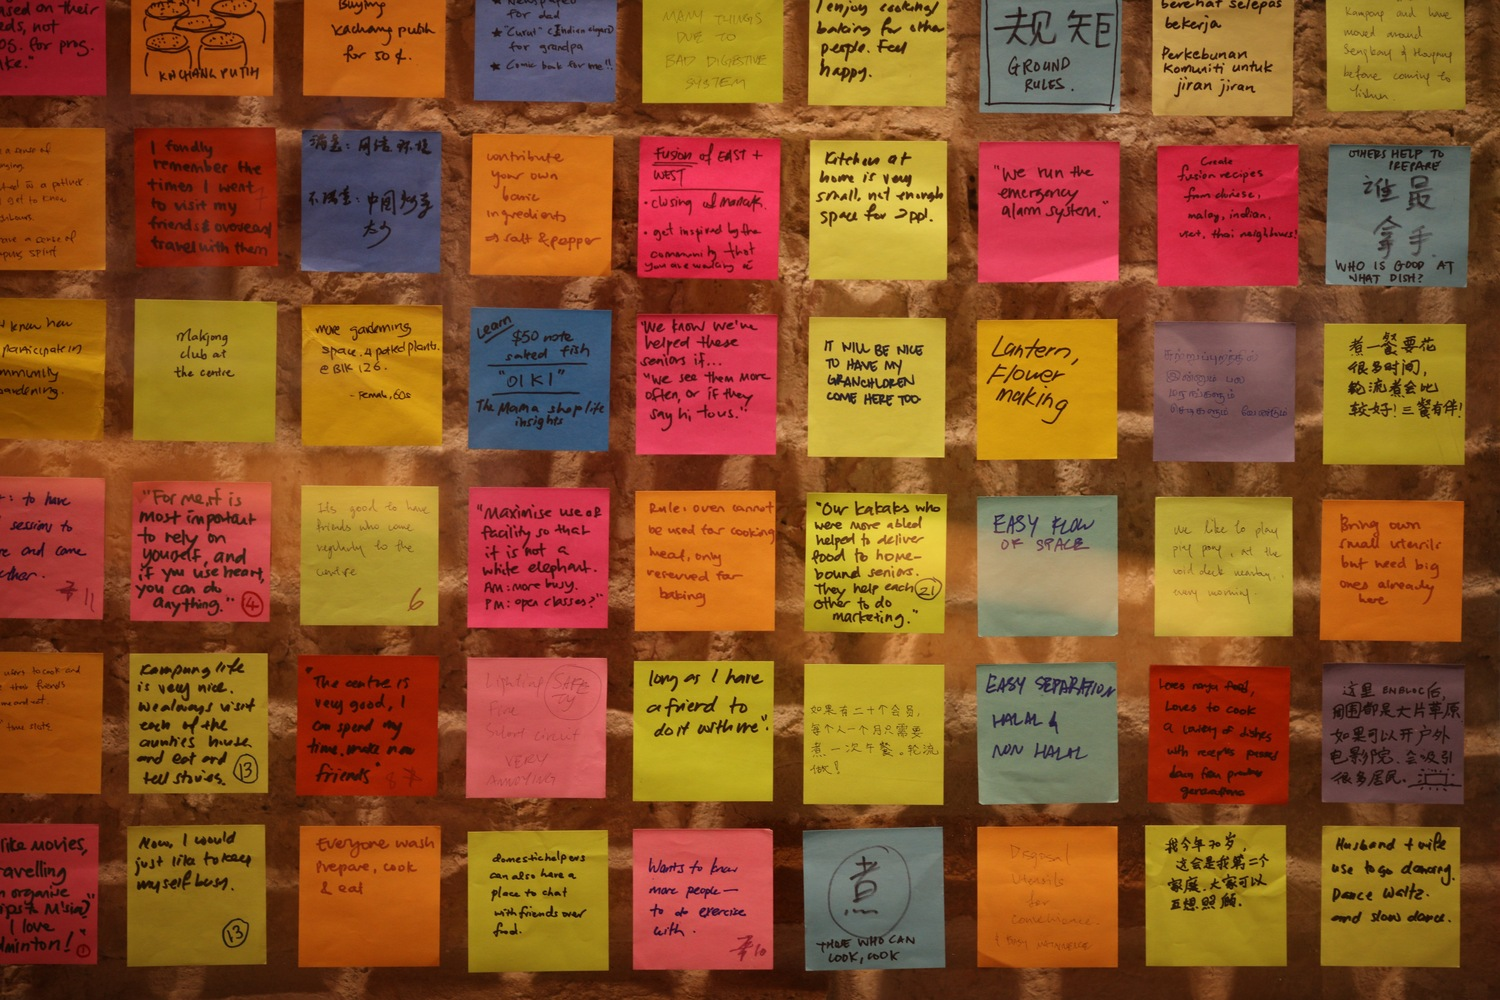 8._Close-up_of_post-it_notes_handwritten_by_participants_in_P!D's_engagement_programmes._Singapore_Pavilion_at_Biennale_Architettura_2016_Venice_Credit_Don_Wong